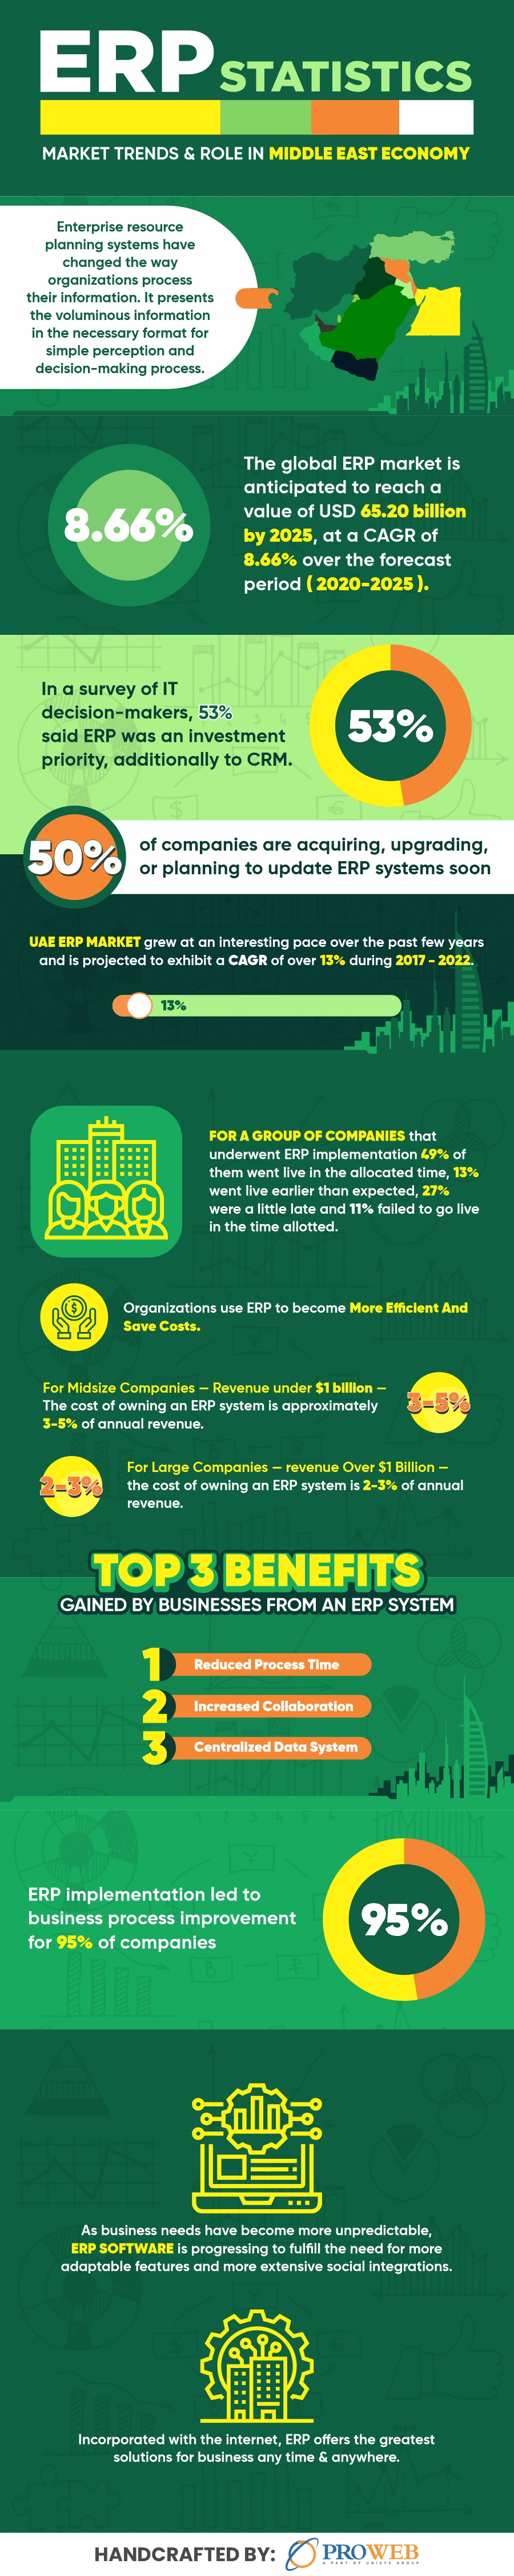 ERP Statistics_Market Trends & Role in Middle East Economy